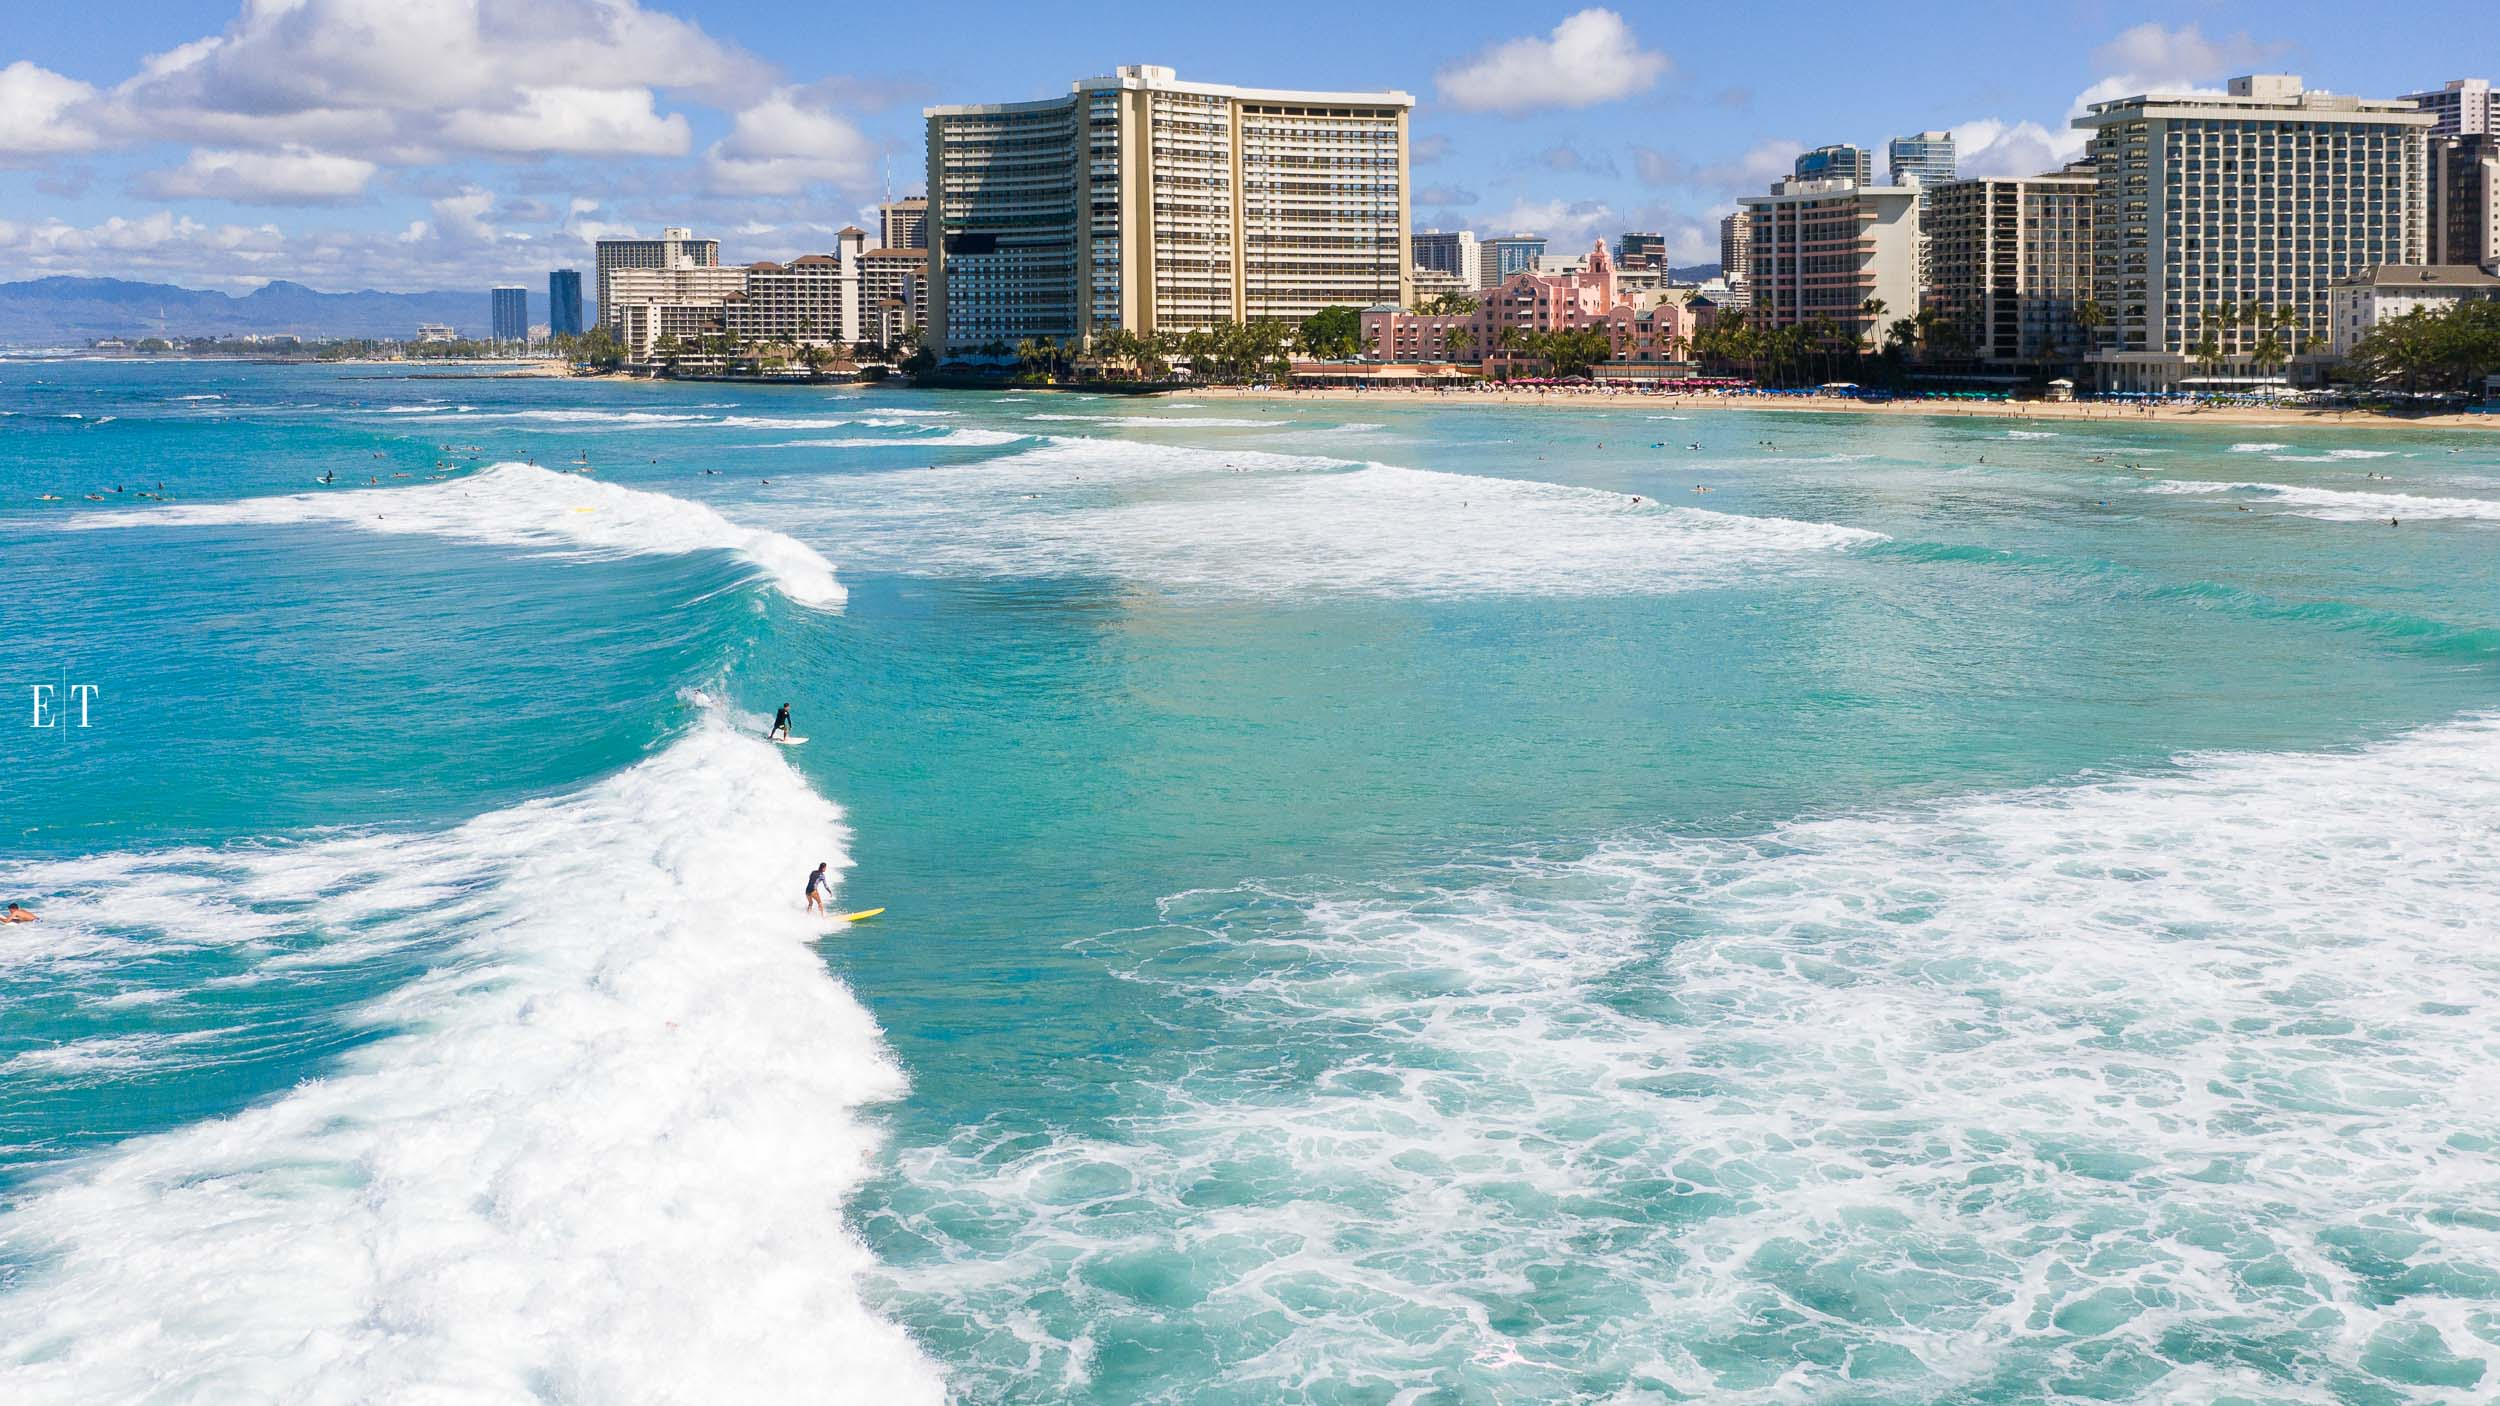 Two surfers, Waikiki Beach